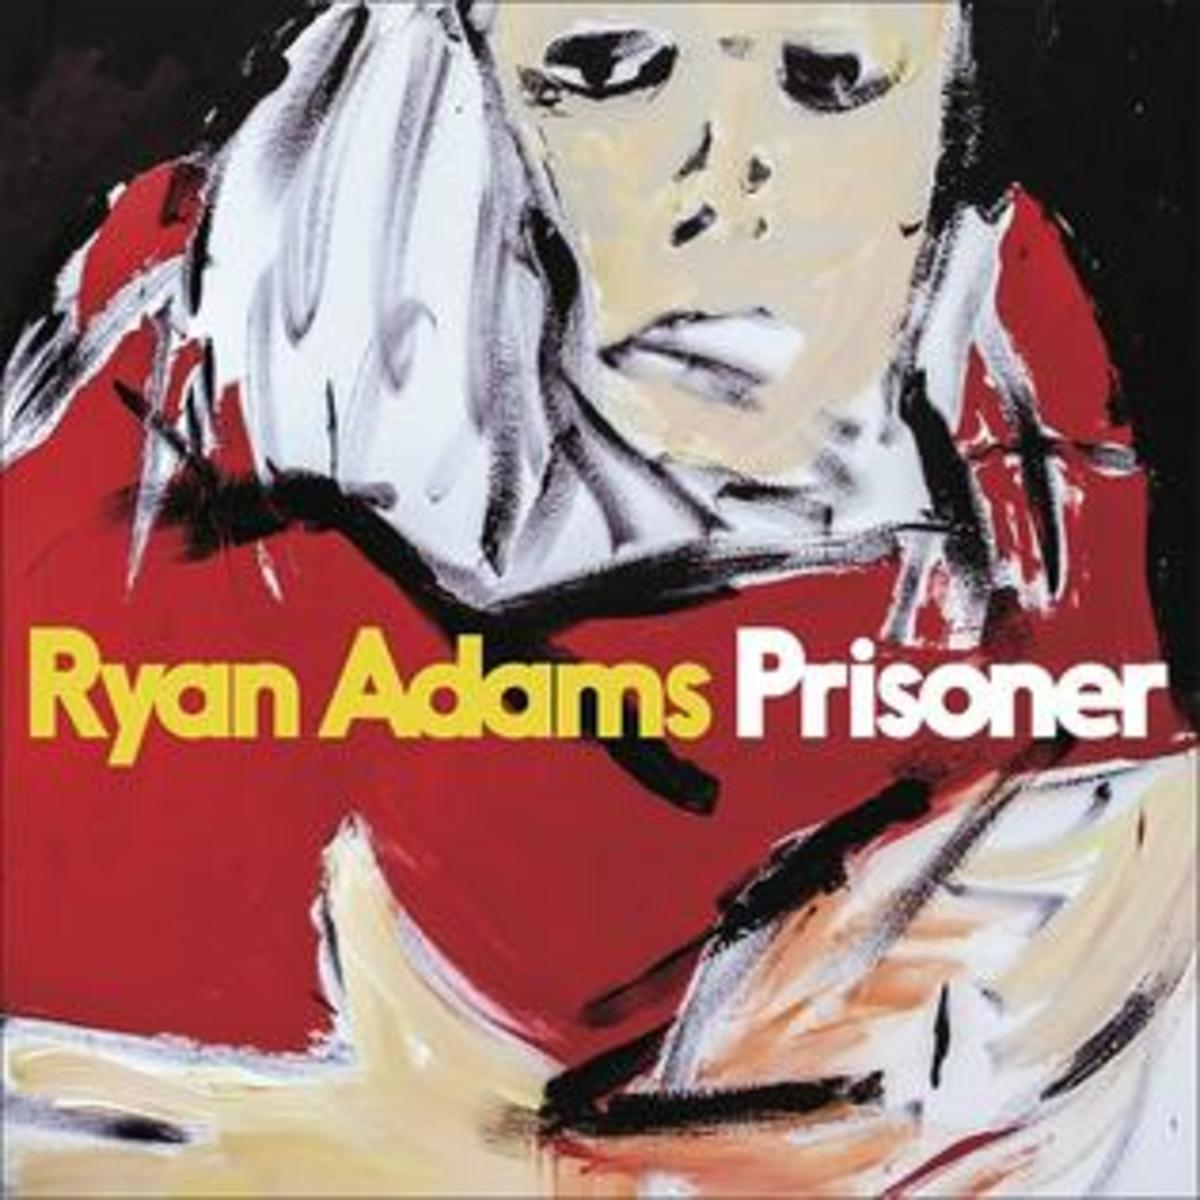 Artwork by Ryan Adams.